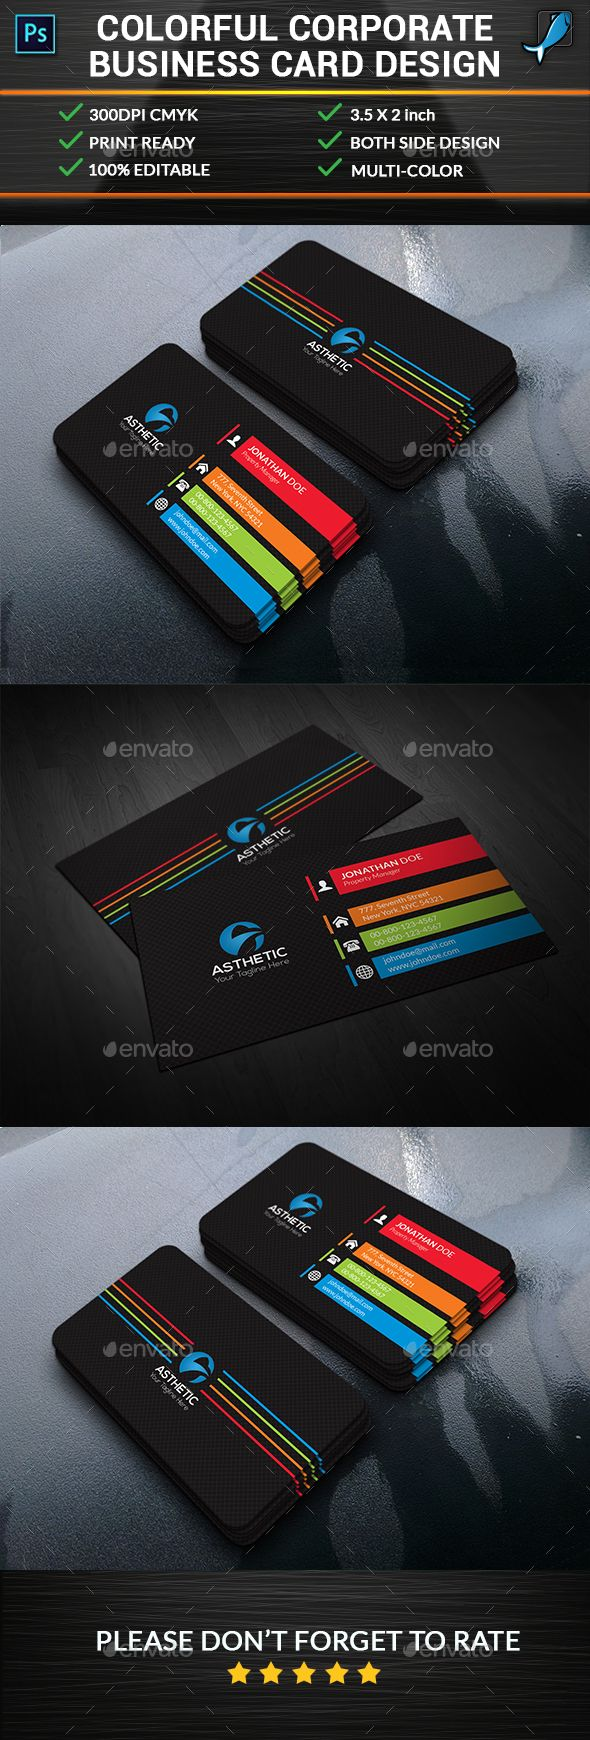 Colorful Corporate Business Card